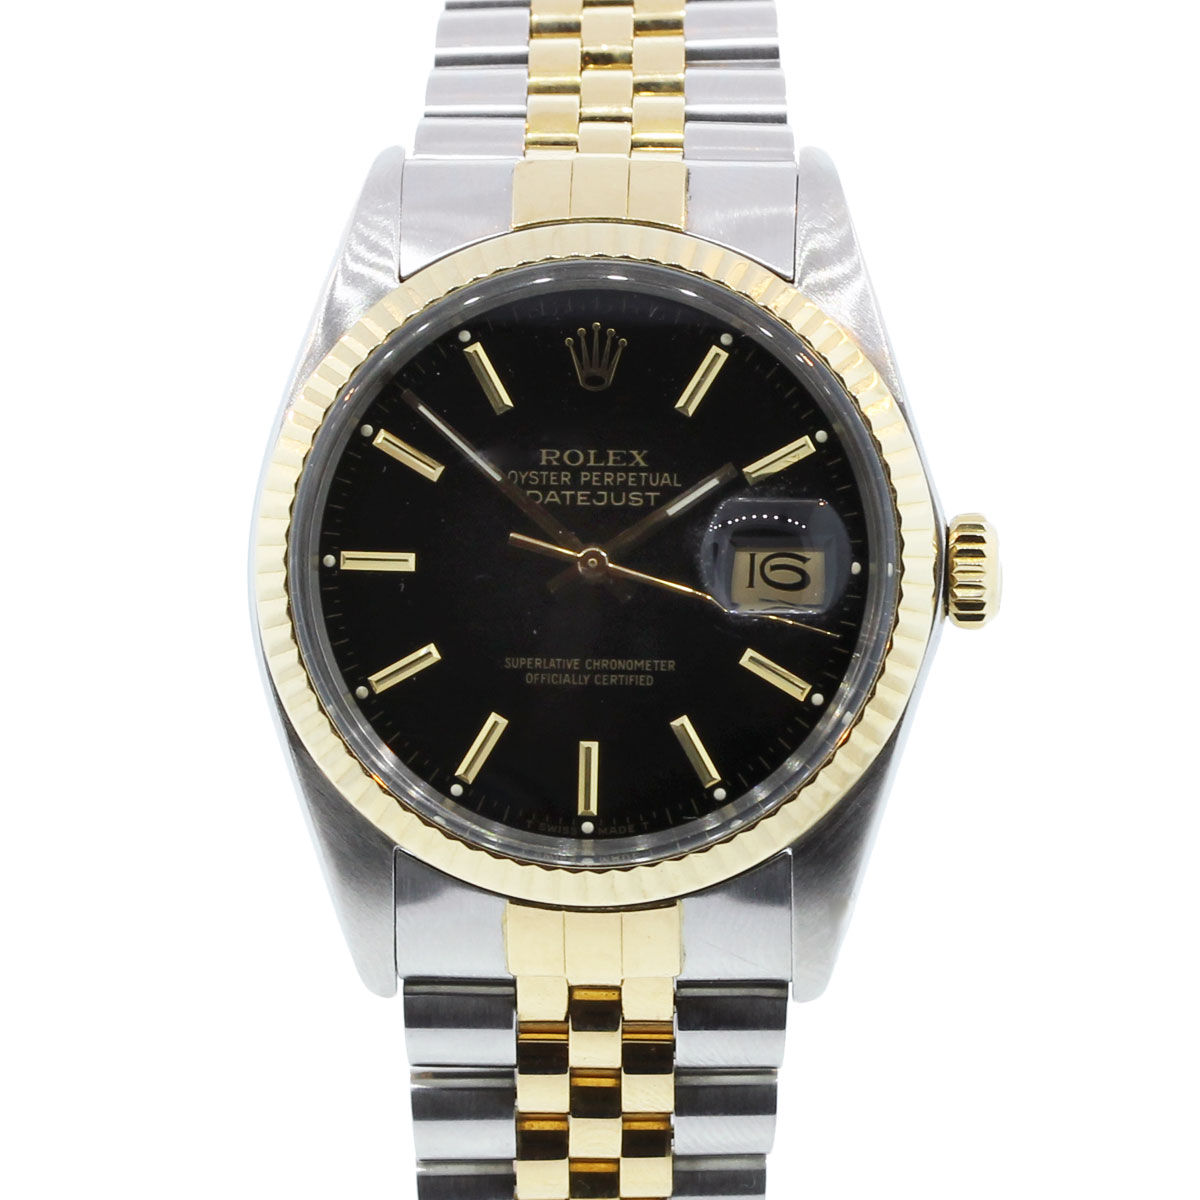 Rolex Datejust 16013 Black Dial Jubilee Two Tone Watch